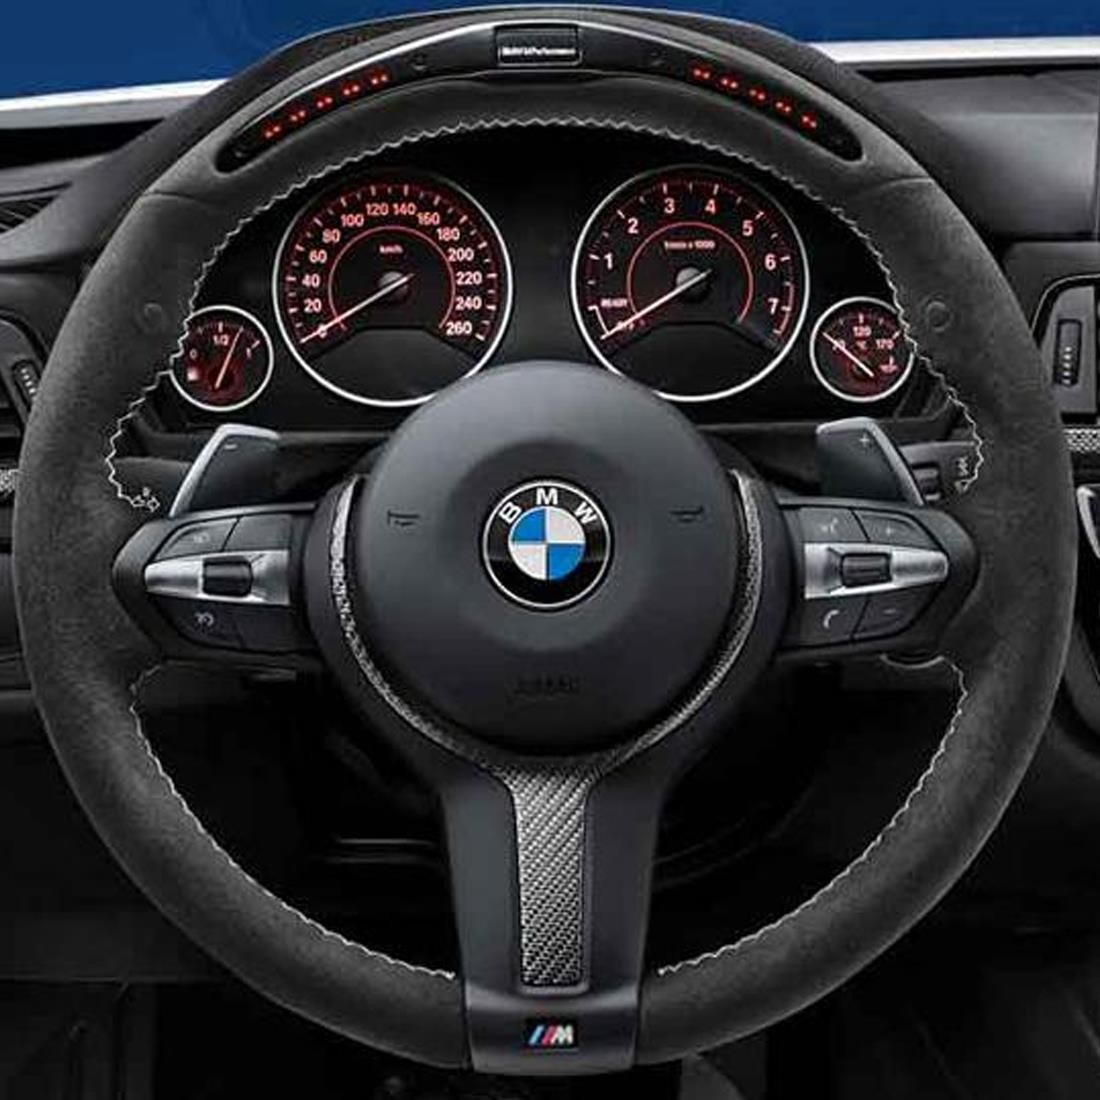 Verrassend Amazon.com: BMW M Performance Electronic Steering Wheel for Sport AY-17